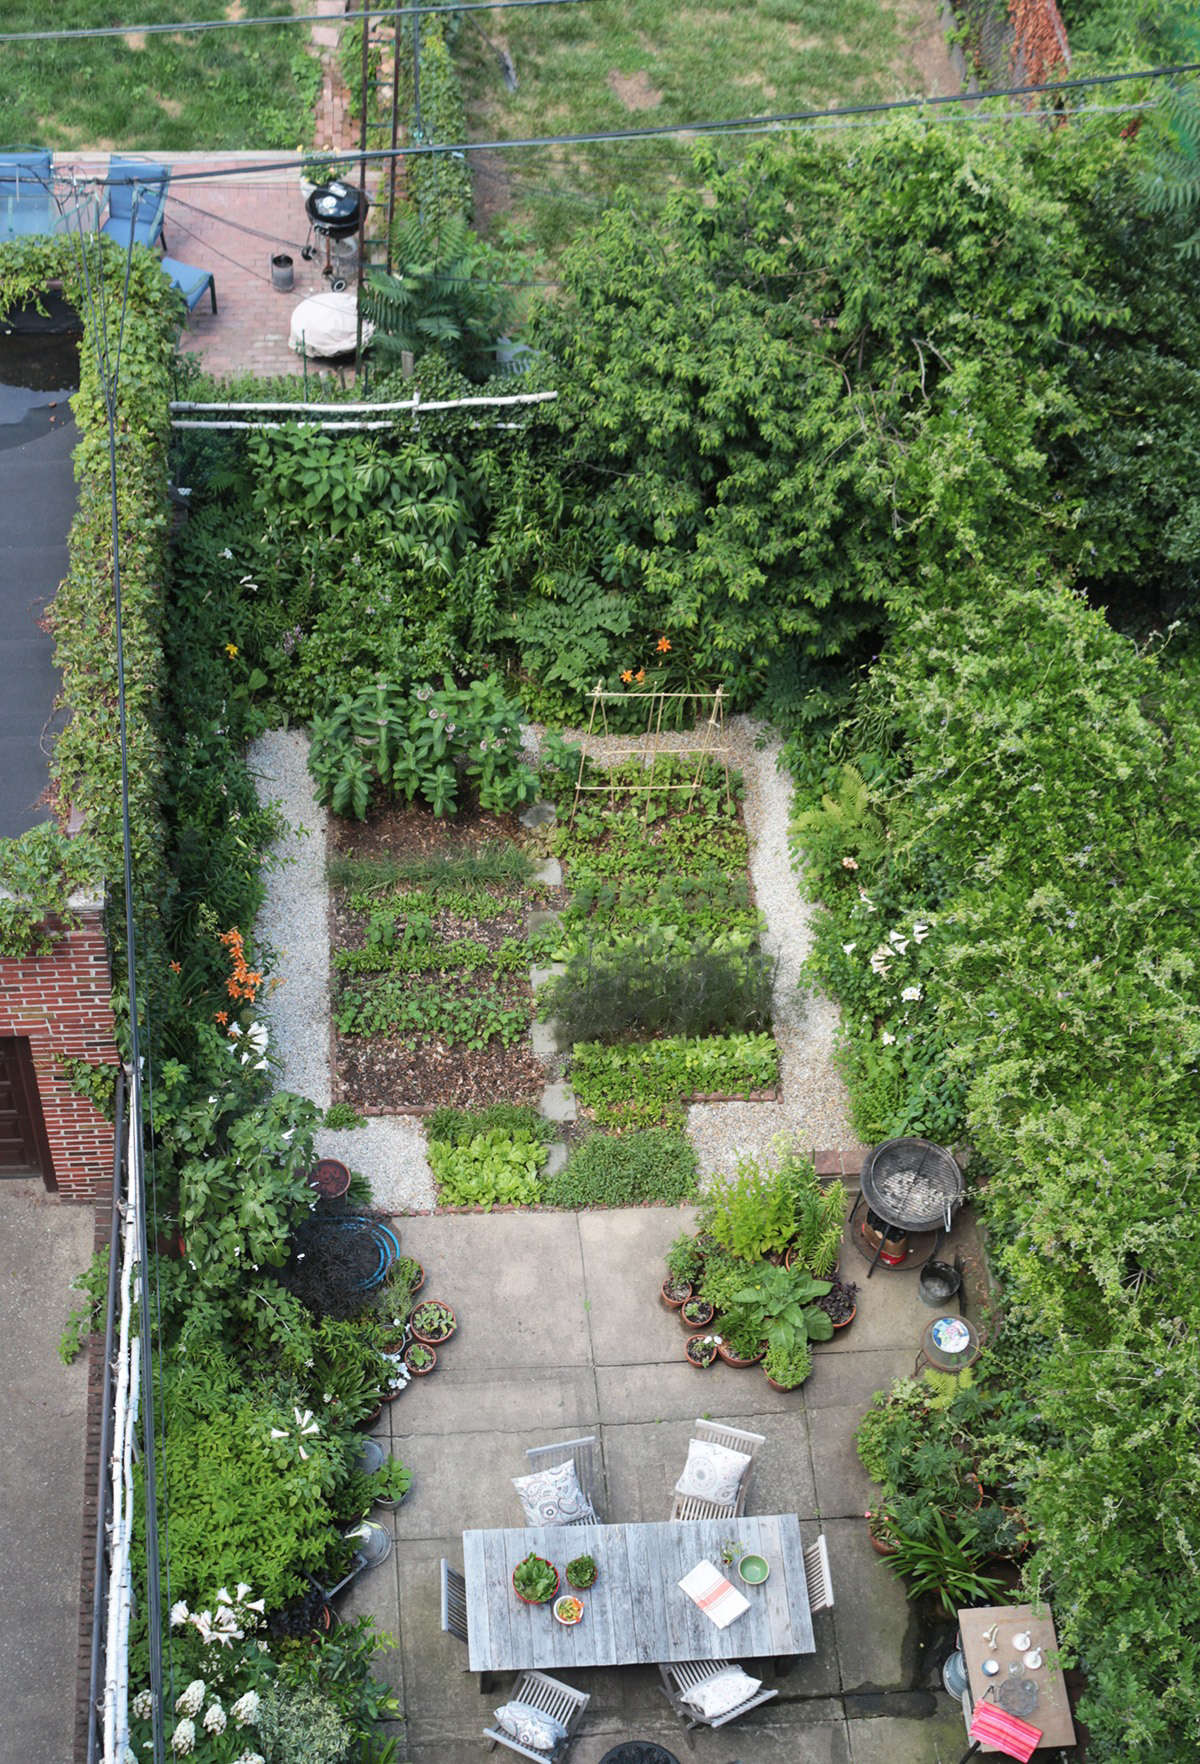 Carroll Gardens Brooklyn backyard garden by Marie Viljoen